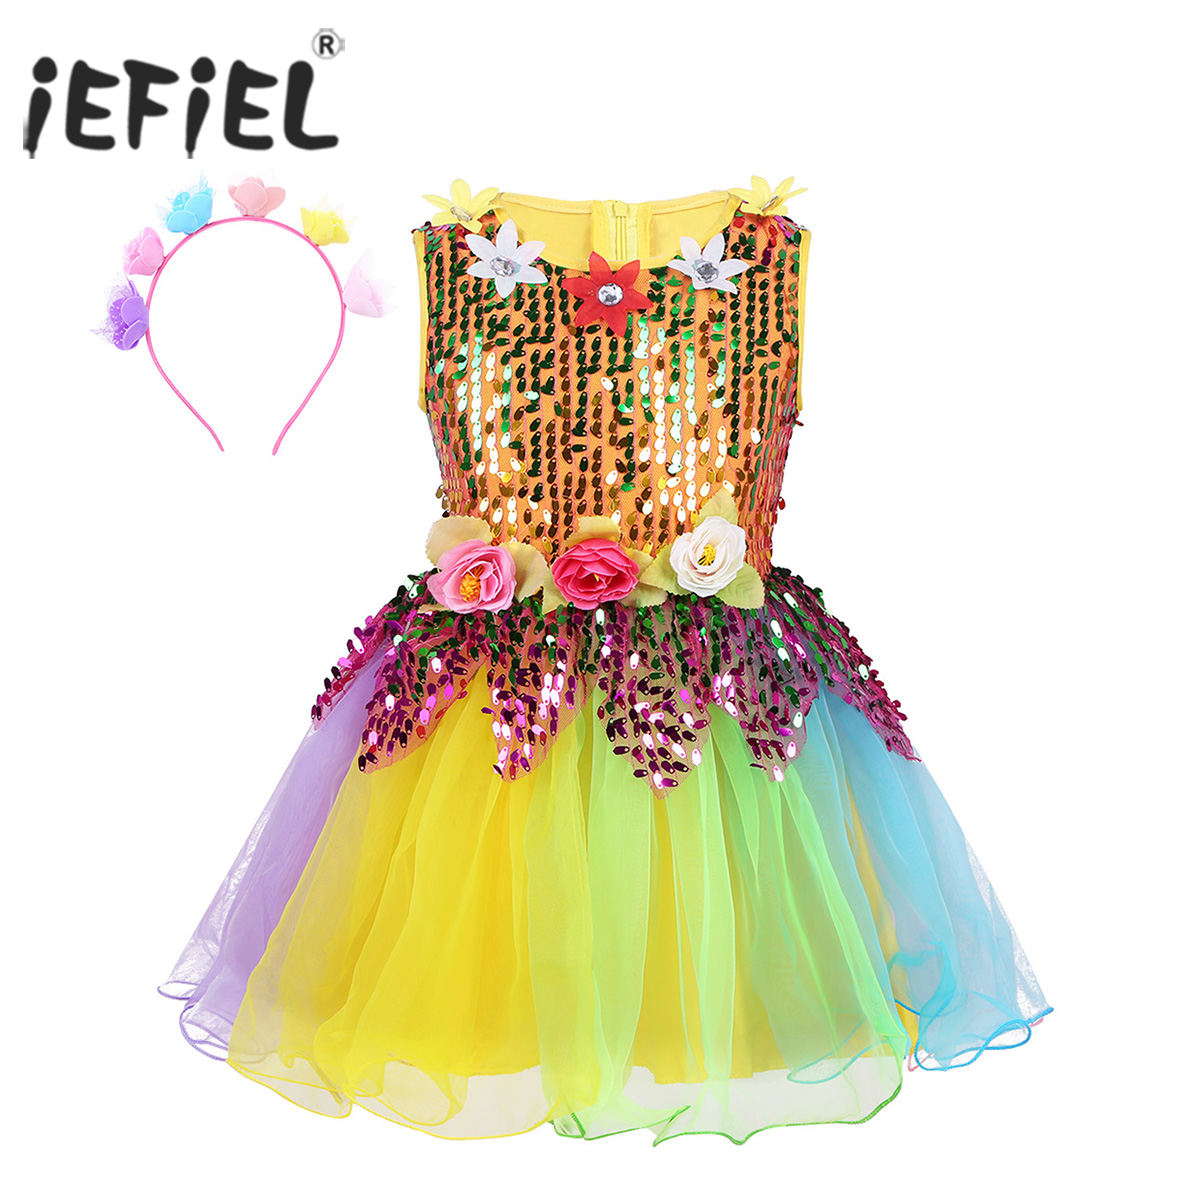 Kids Girls Dance Wear Sequined Flower Rainbow Tulle Dress with Hair Hoop Set for Modern Jazz Latin Dance Stage Performance